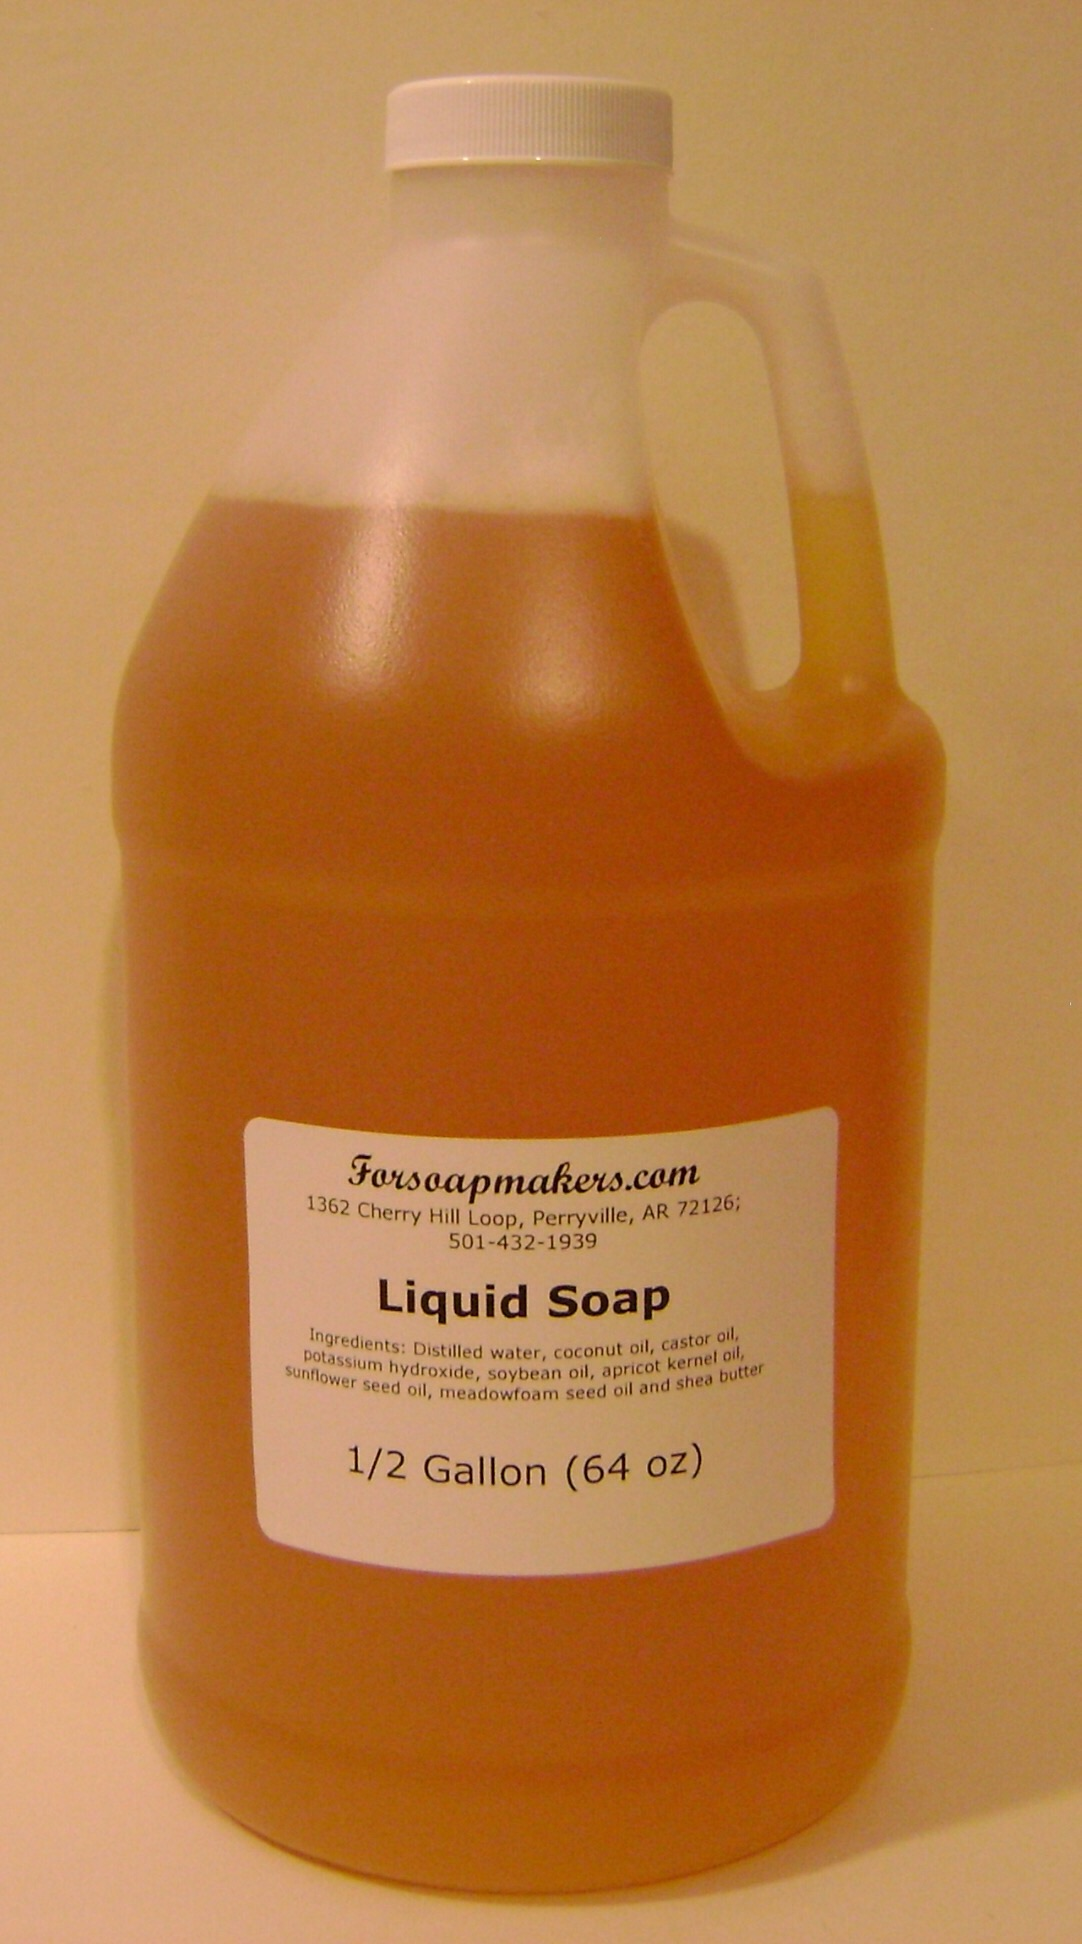 Liquid Soap - 1/2 gallon